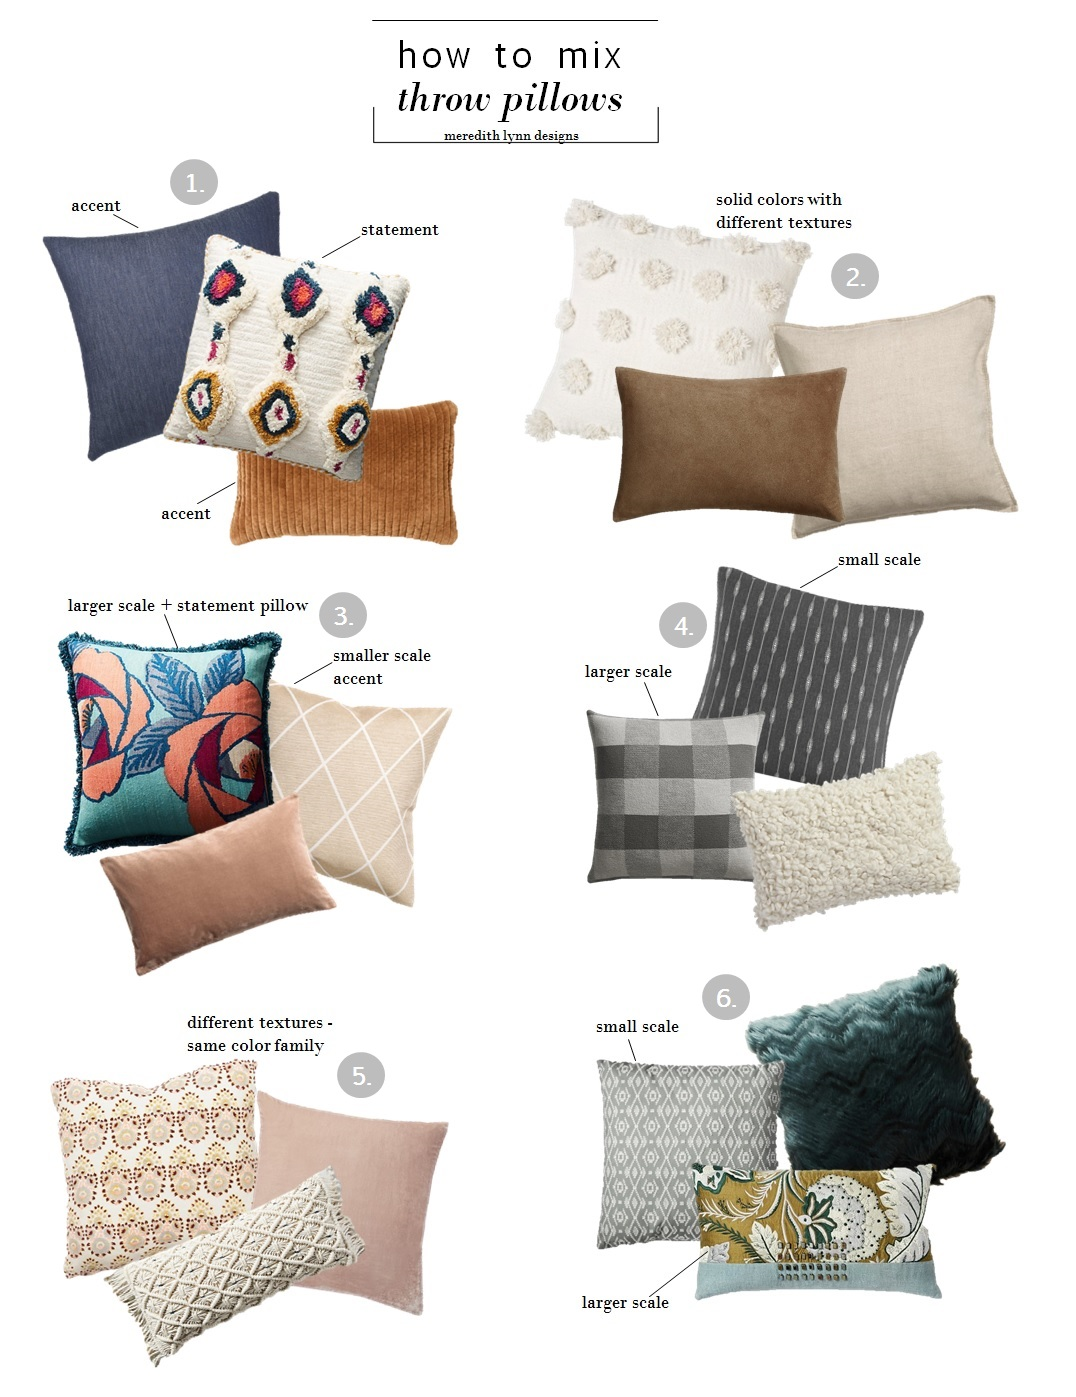 How To Mix Throw Pillows Meredith Lynn Designs